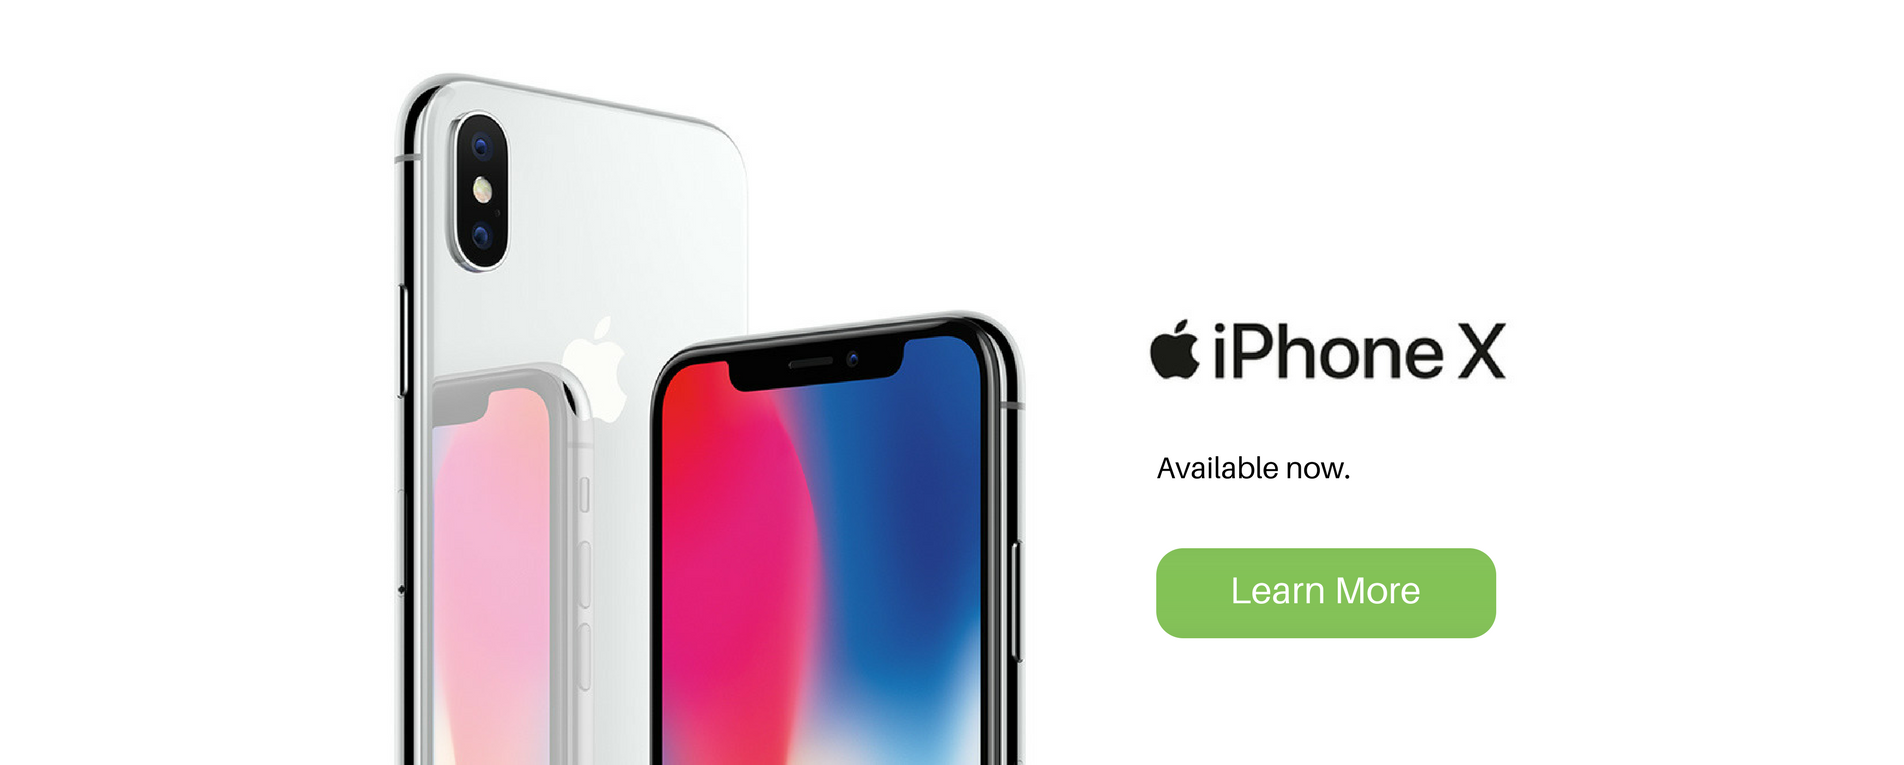 iPhone X Available Now